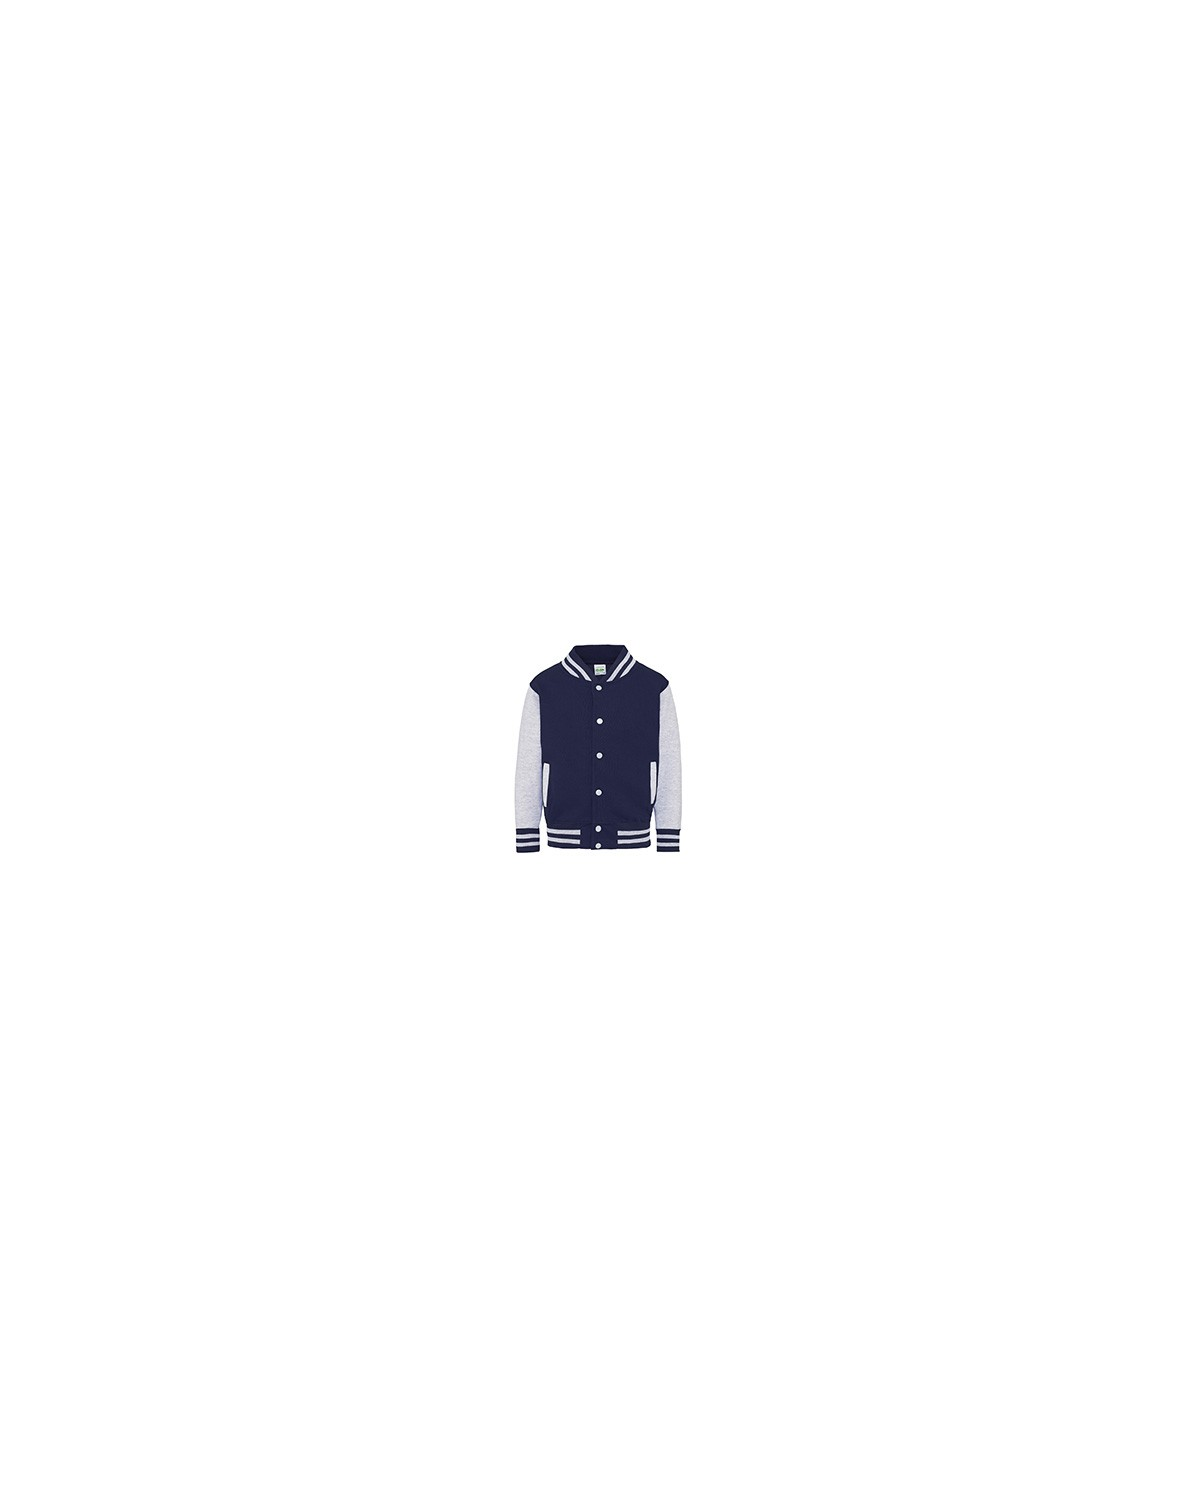 JHY043 Just Hoods By AWDis OXF NVY/ HTH GRY